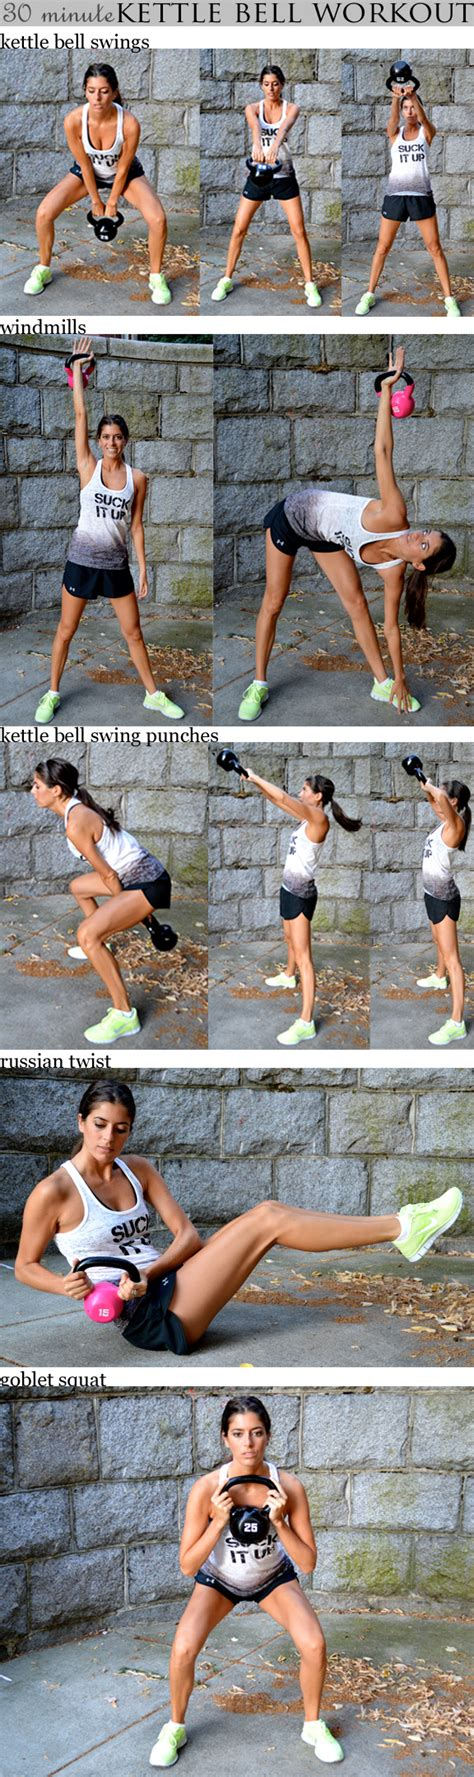 workout minute kettlebell kettle bell exercises workouts swing swings kettlebells routine training fitness pumps iron russian minutes weight loss